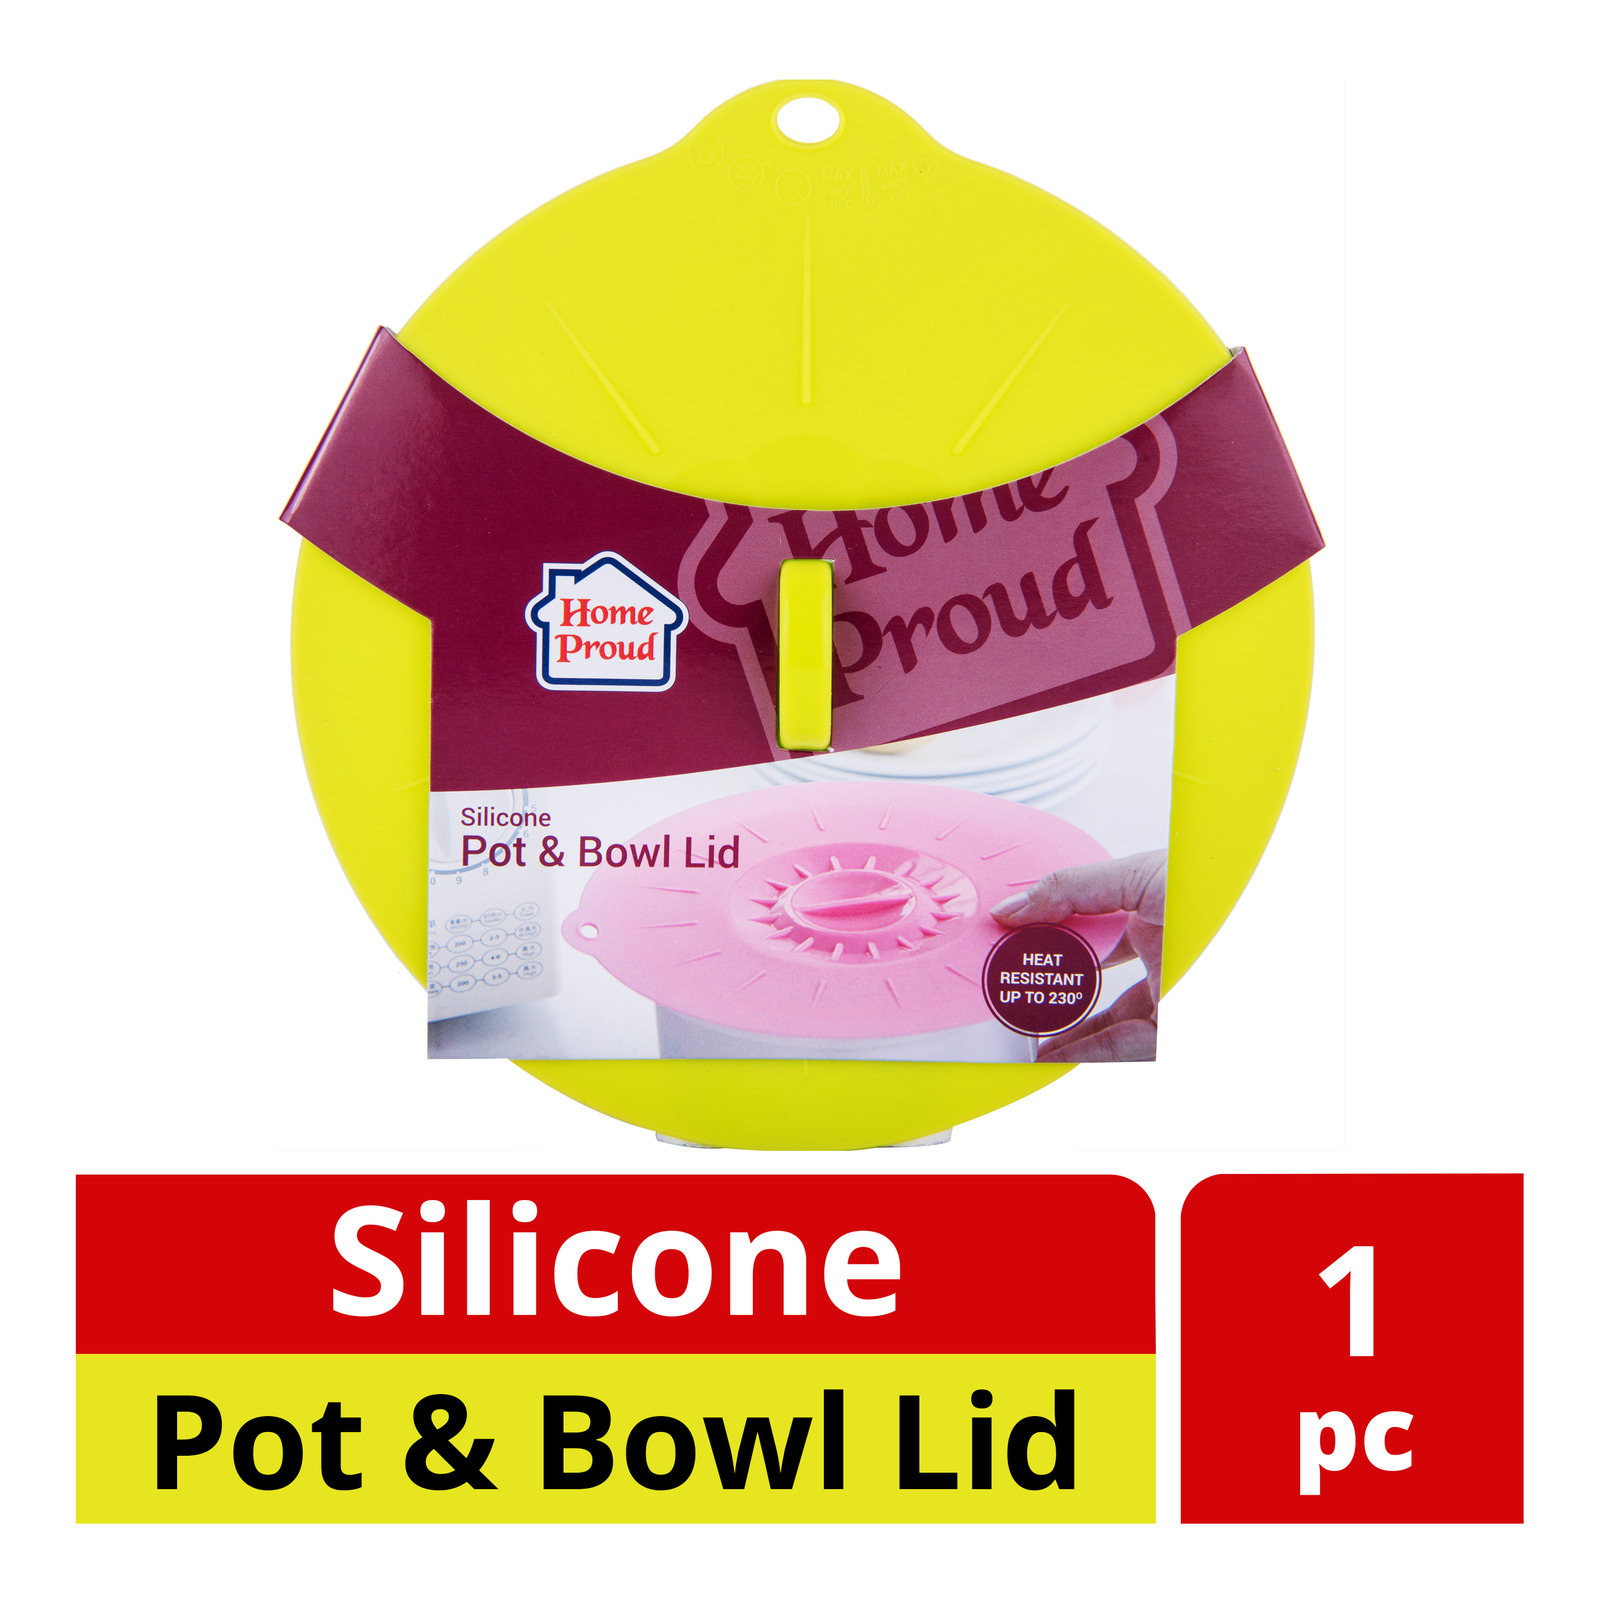 HomeProud Silicone Pot & Bowl Lid